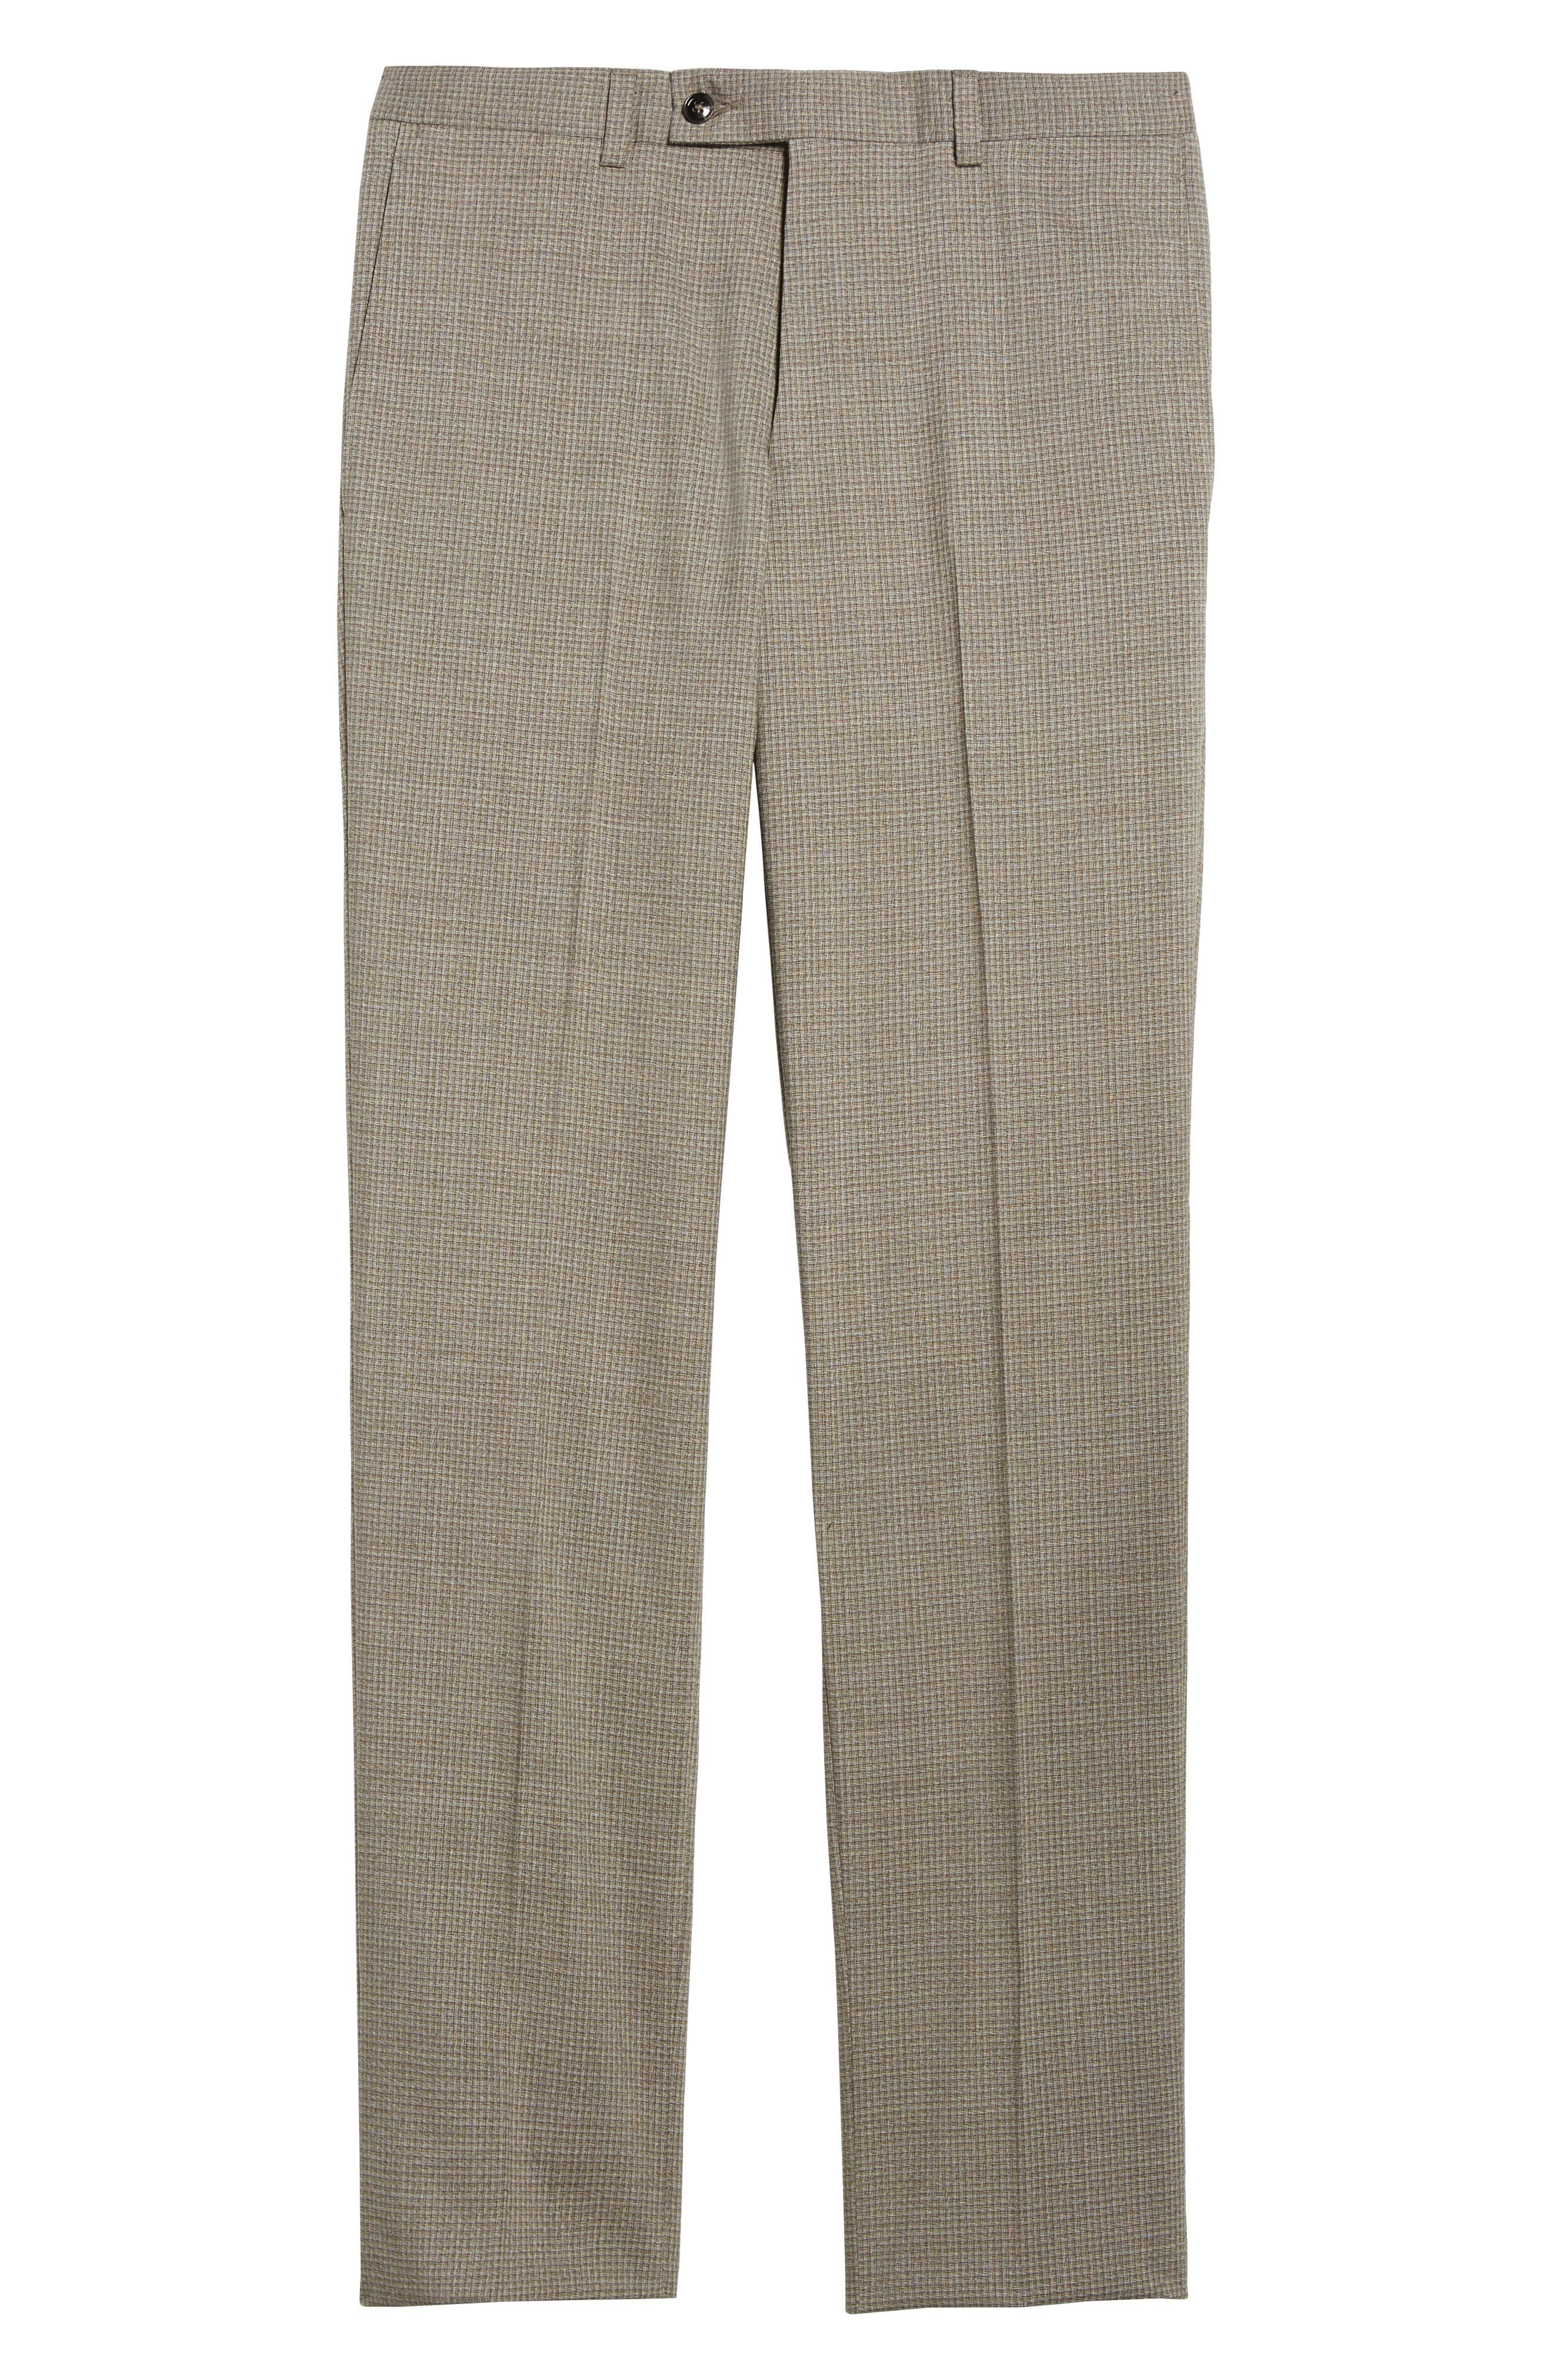 Flat Front Check Wool Trousers,                             Alternate thumbnail 6, color,                             Tan